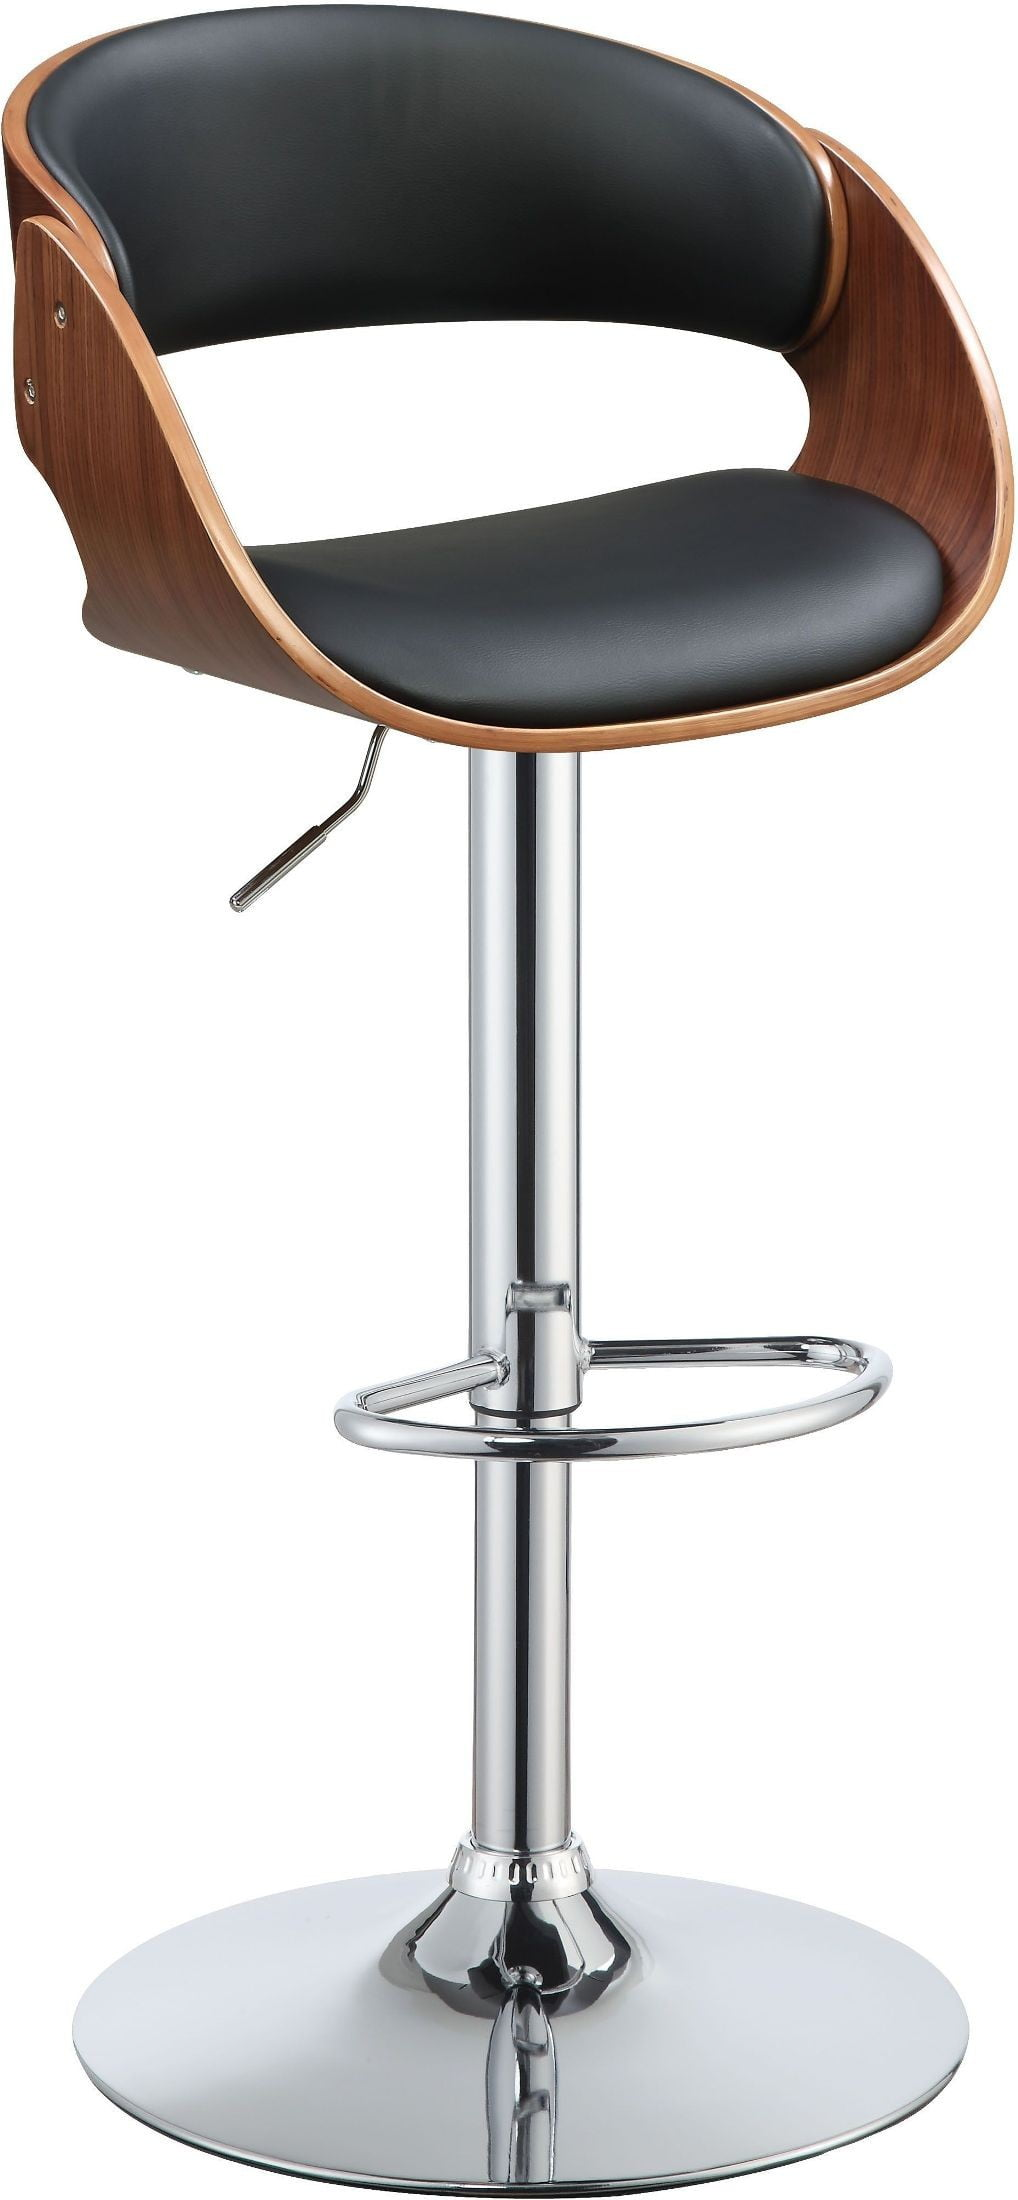 Camila Black And Wood Back Swivel Adjustable Stool From